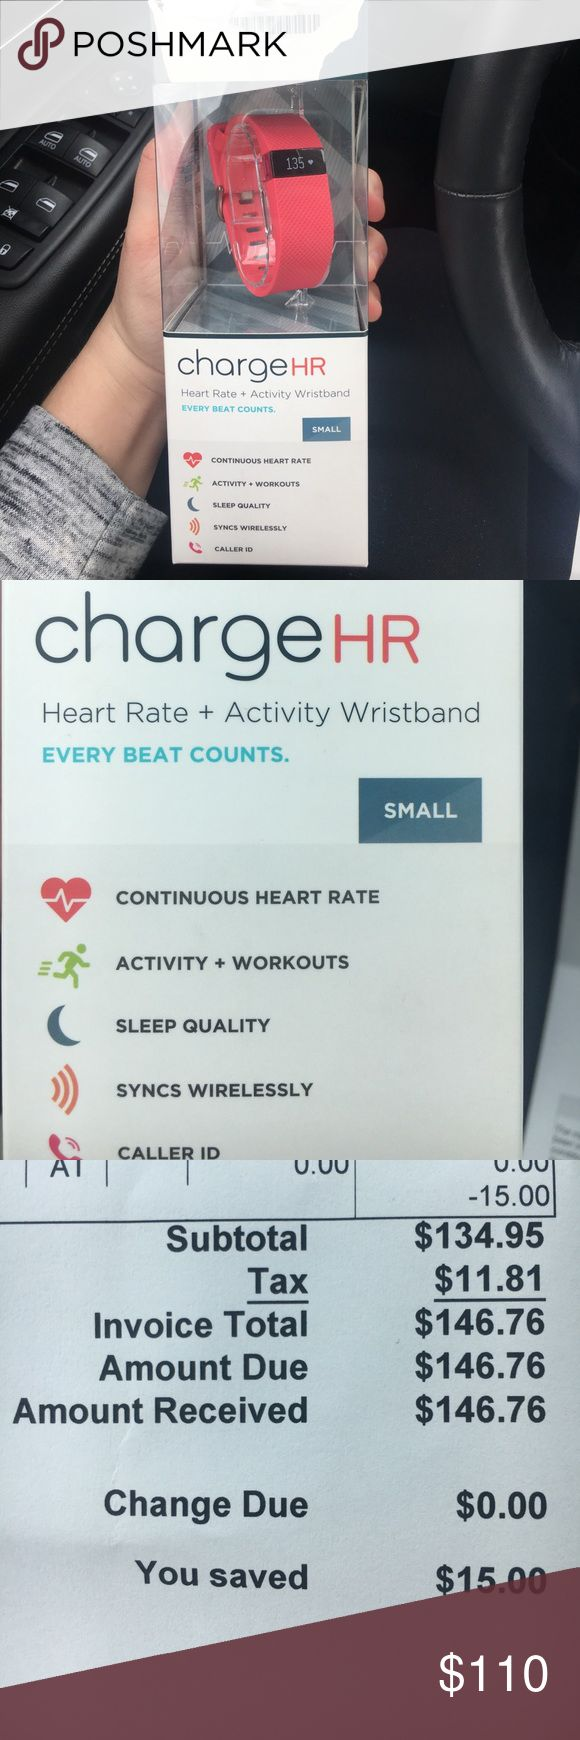 Fitbit Charge HR Small pink Fitbit charge HR for sale. Brand new in box, top ripped off of box before I realized i bought the wrong size and is not returnable. Has not been taken out of box. fitbit Accessories Watches